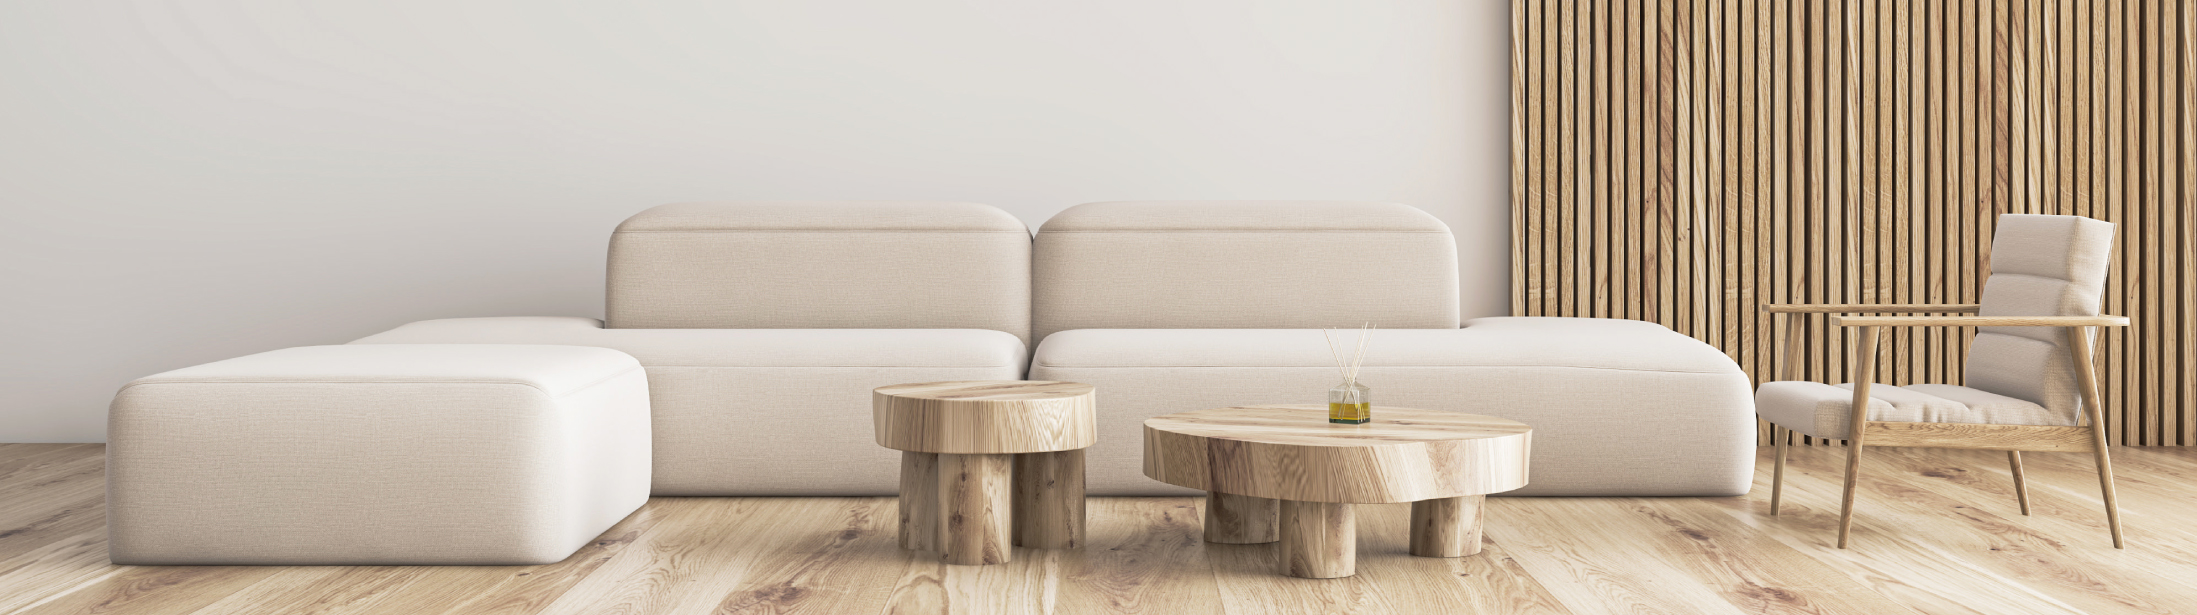 Interior of stylish living room with white and wooden walls, wooden floor, comfortable beige sofa and armchair standing near two crude wooden tables. 3d rendering